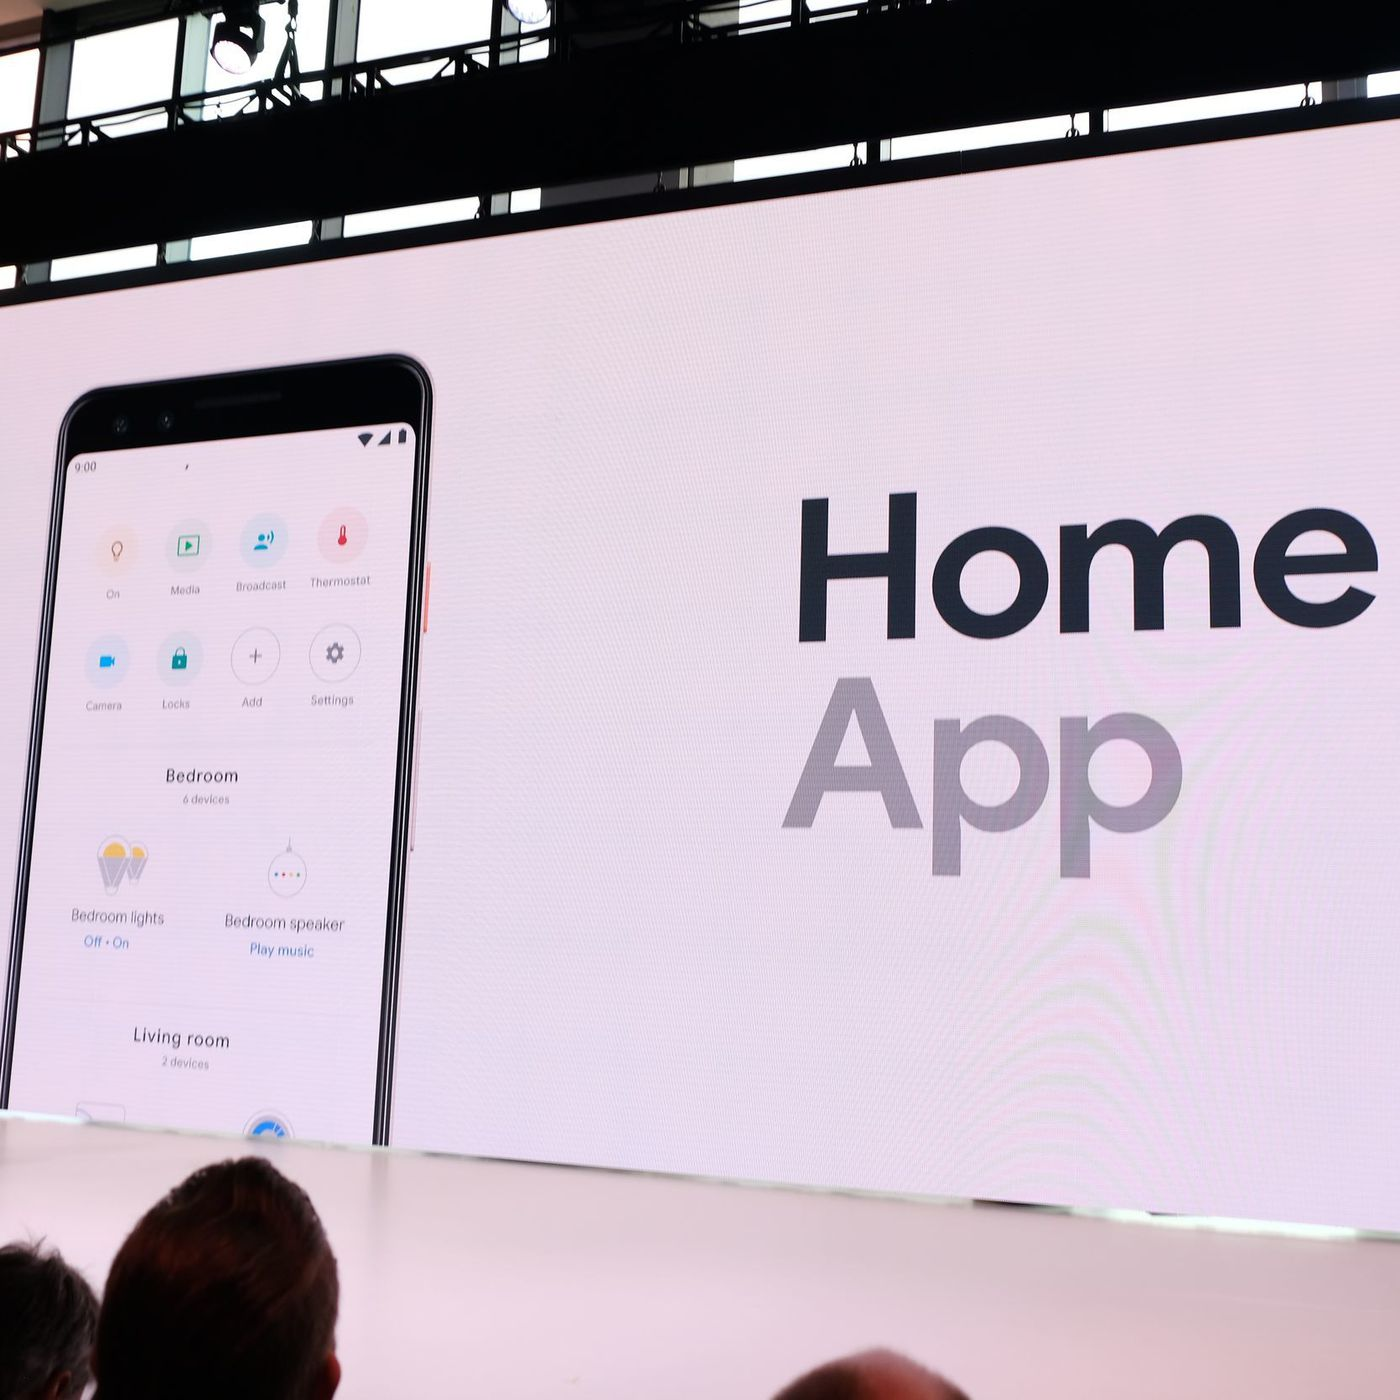 046cc5bc5f8f Google's Home app gets much better design and can now control smart devices  remotely